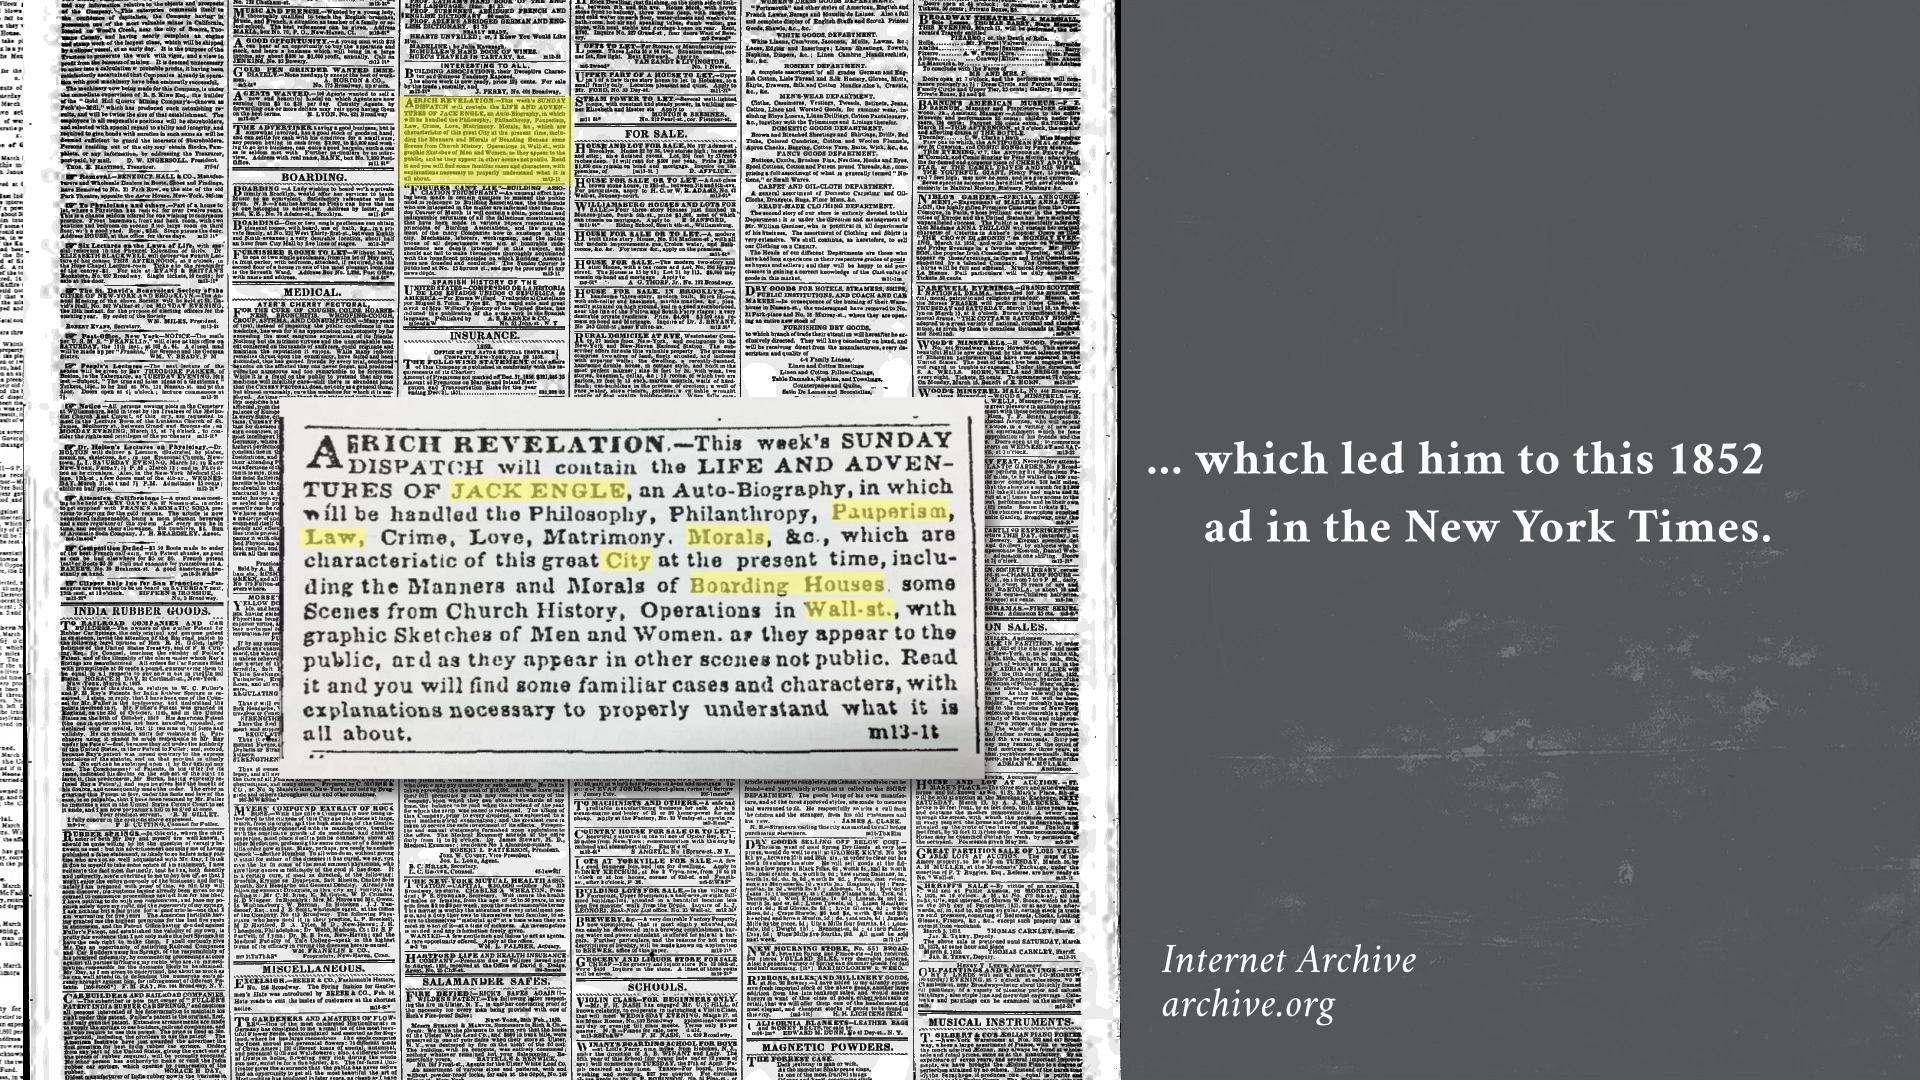 """Video still featuring the New York Times ad that announced """"The Life and Adventures of Jack Engle"""" which Turpin reconciled with keywords and phrases from Whitman's notes."""